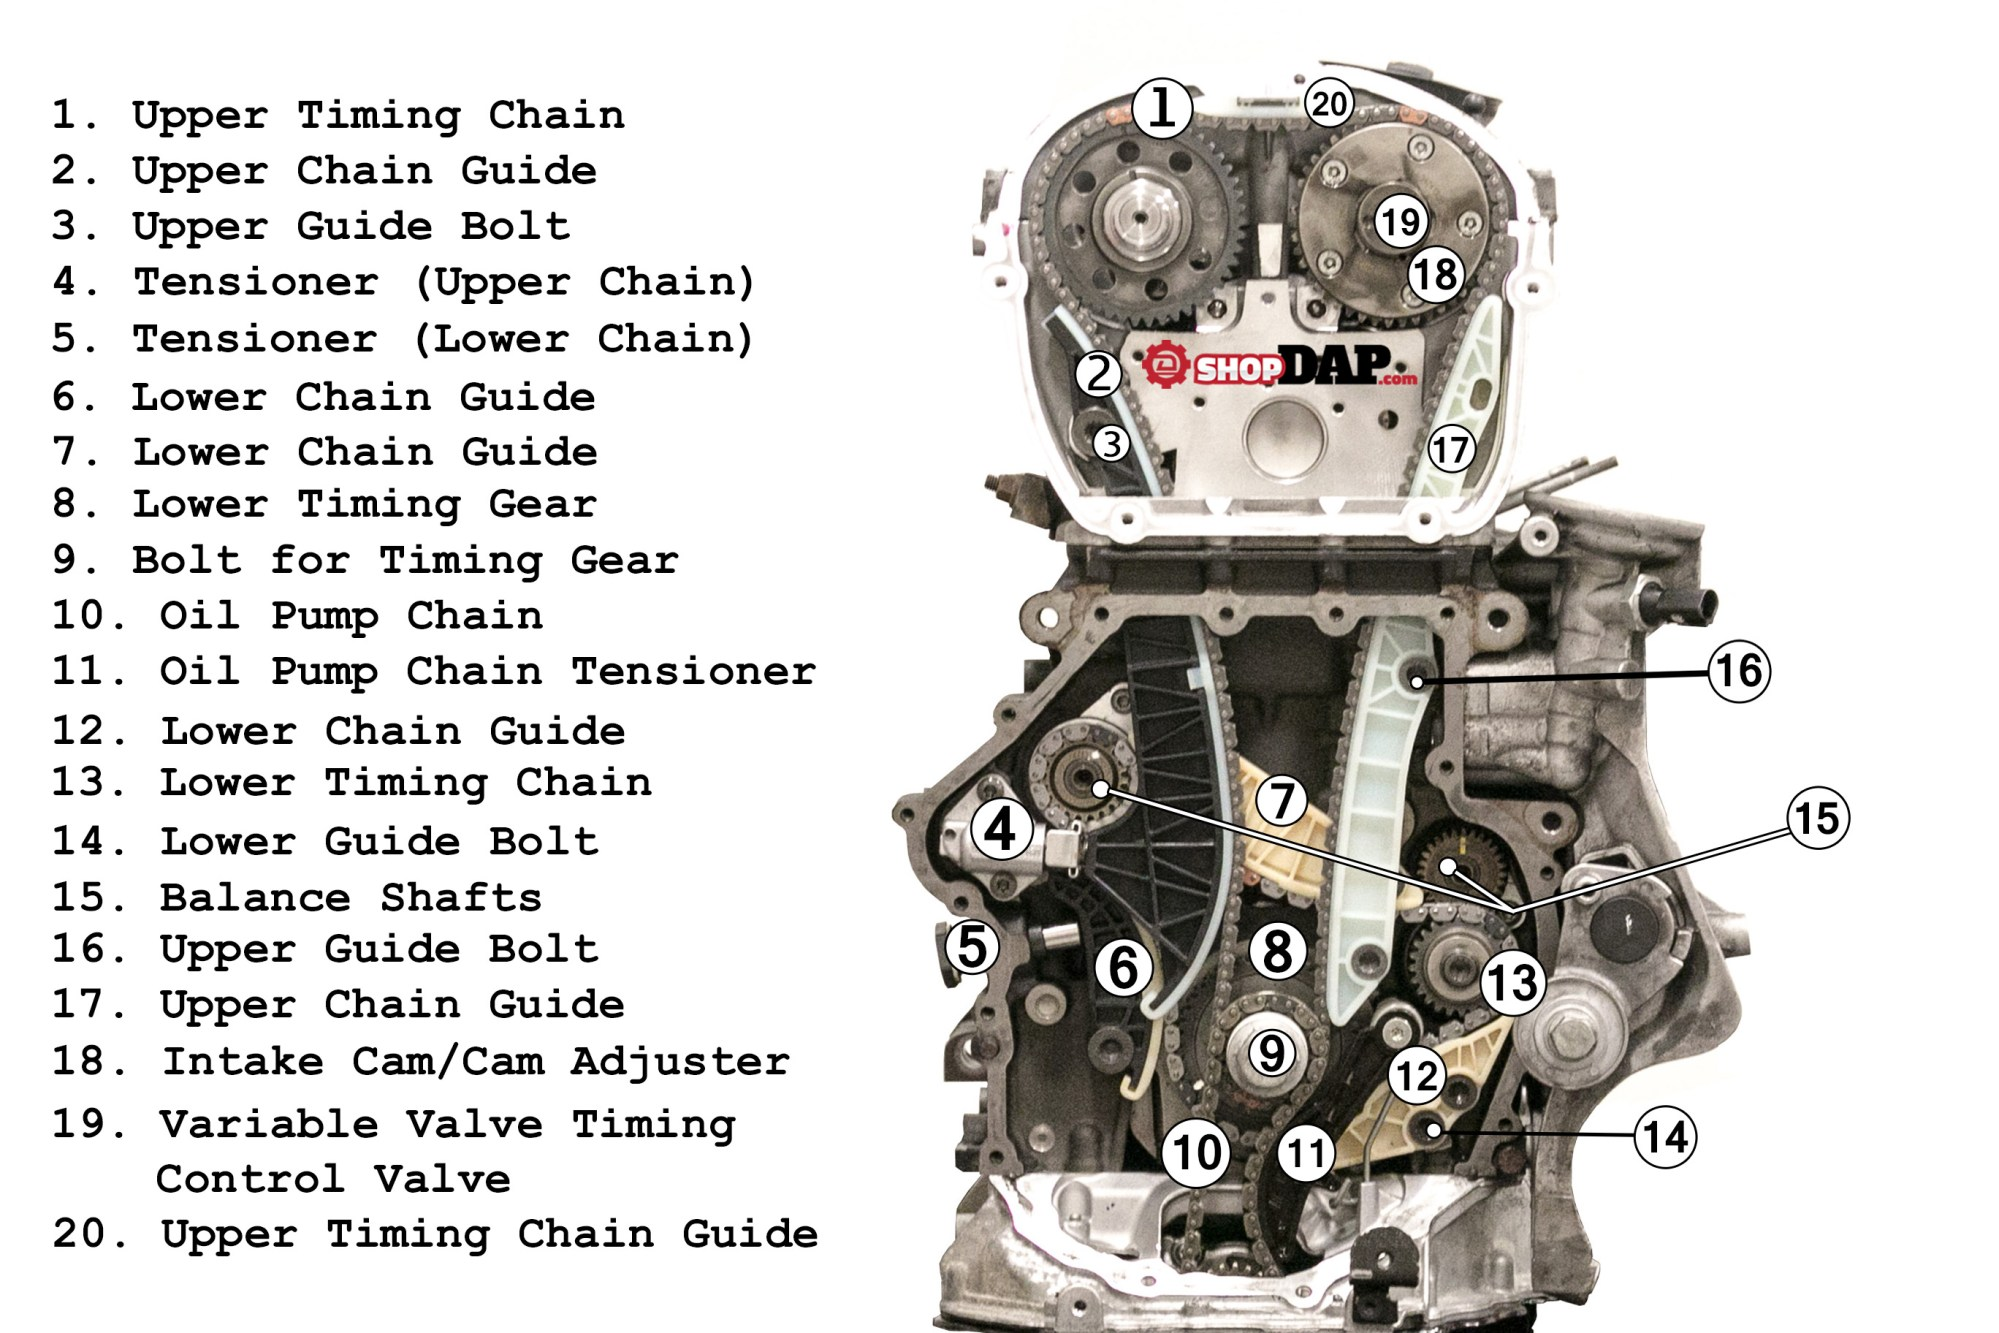 hight resolution of 2 0t tsi timing chain component diagram for vw and audi articles audi 2 0t engine diagram audi engine diagram